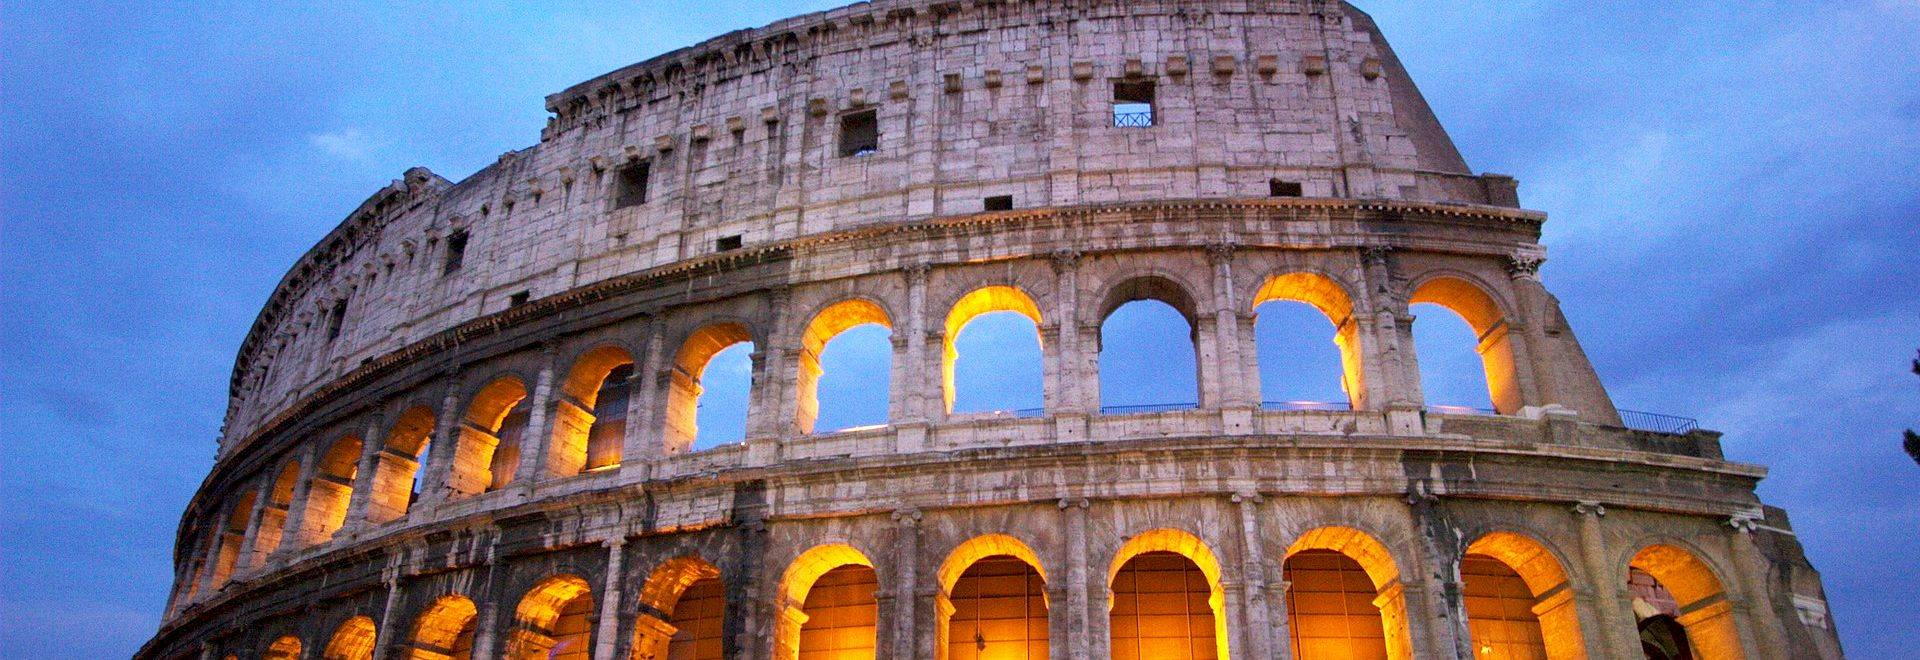 Italy Colosseum Night